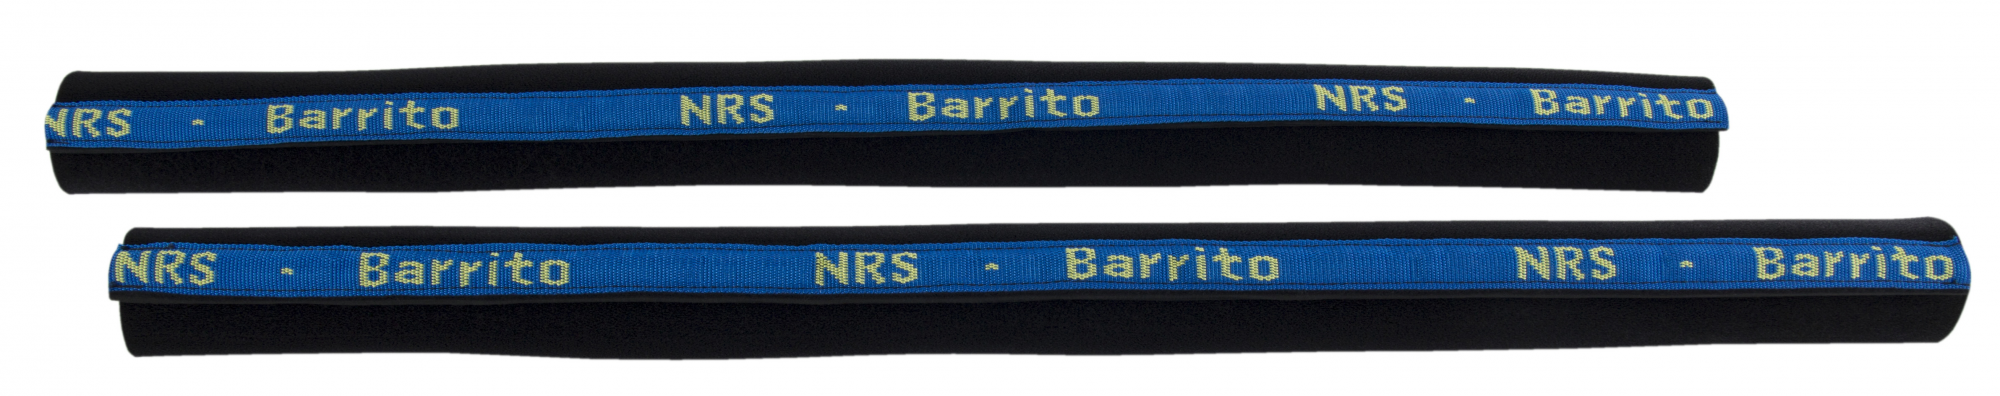 New NRS Barrito Car Rack Wrap 32in